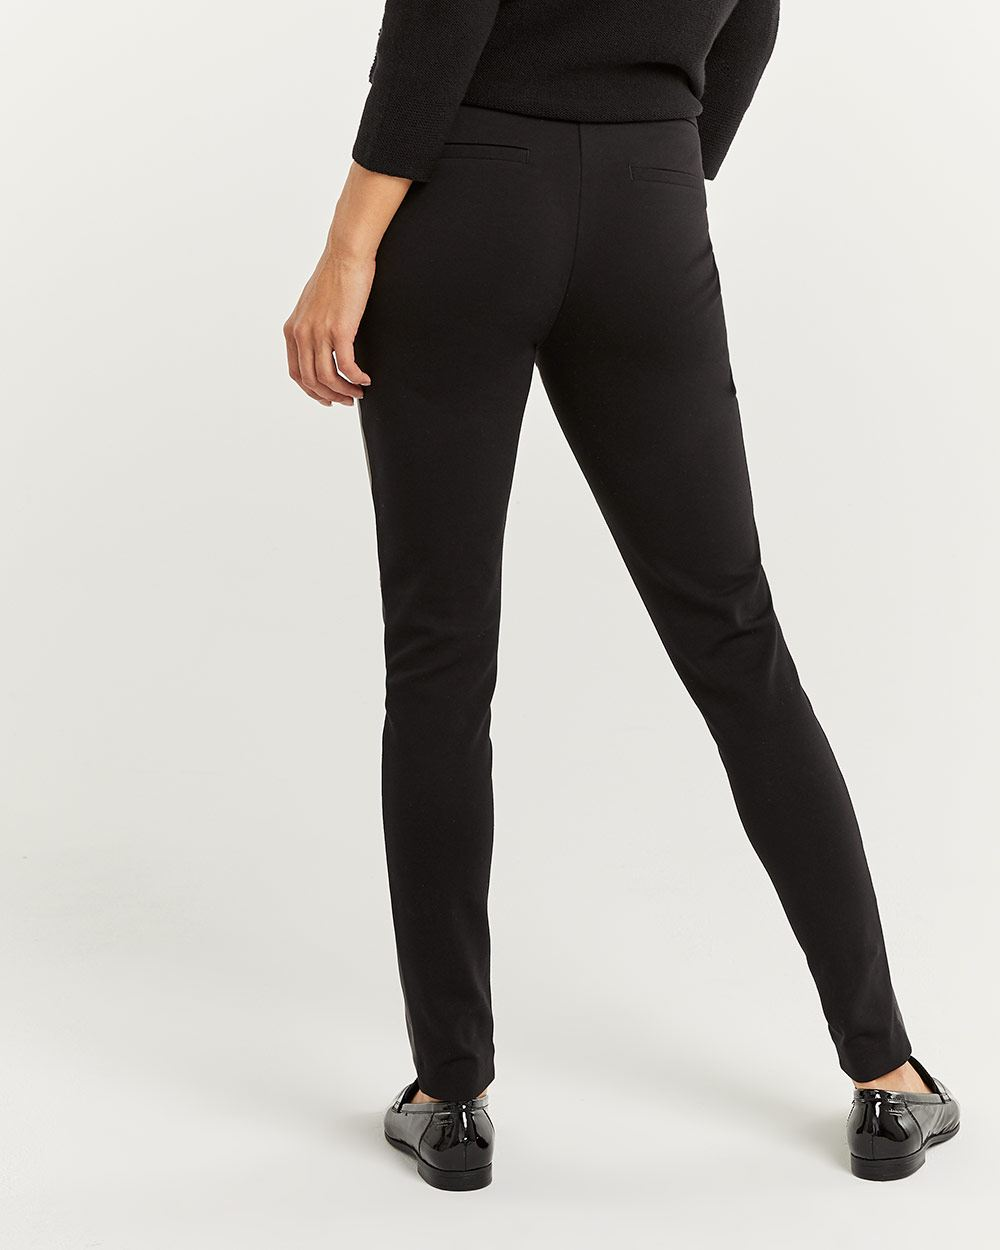 Faux Leather Leggings - Petite